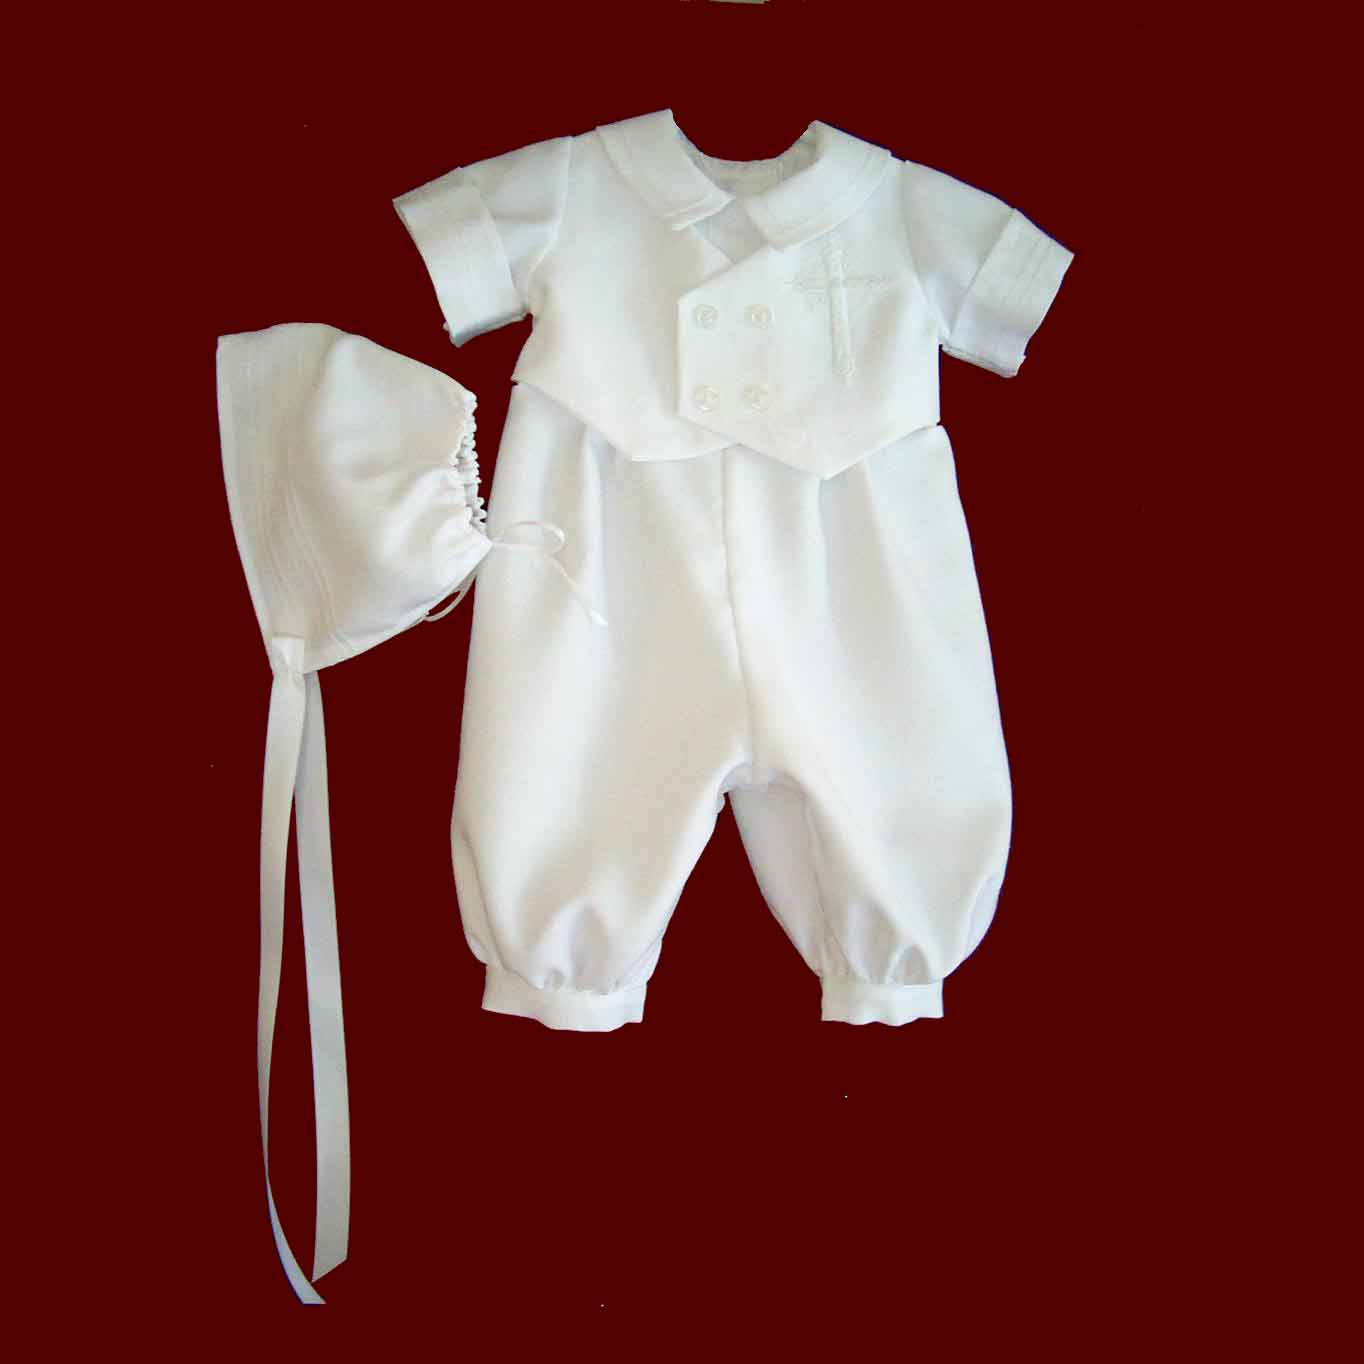 Shantung With All White Single Cross With Diamonds, Short Sleeve, Long Leg